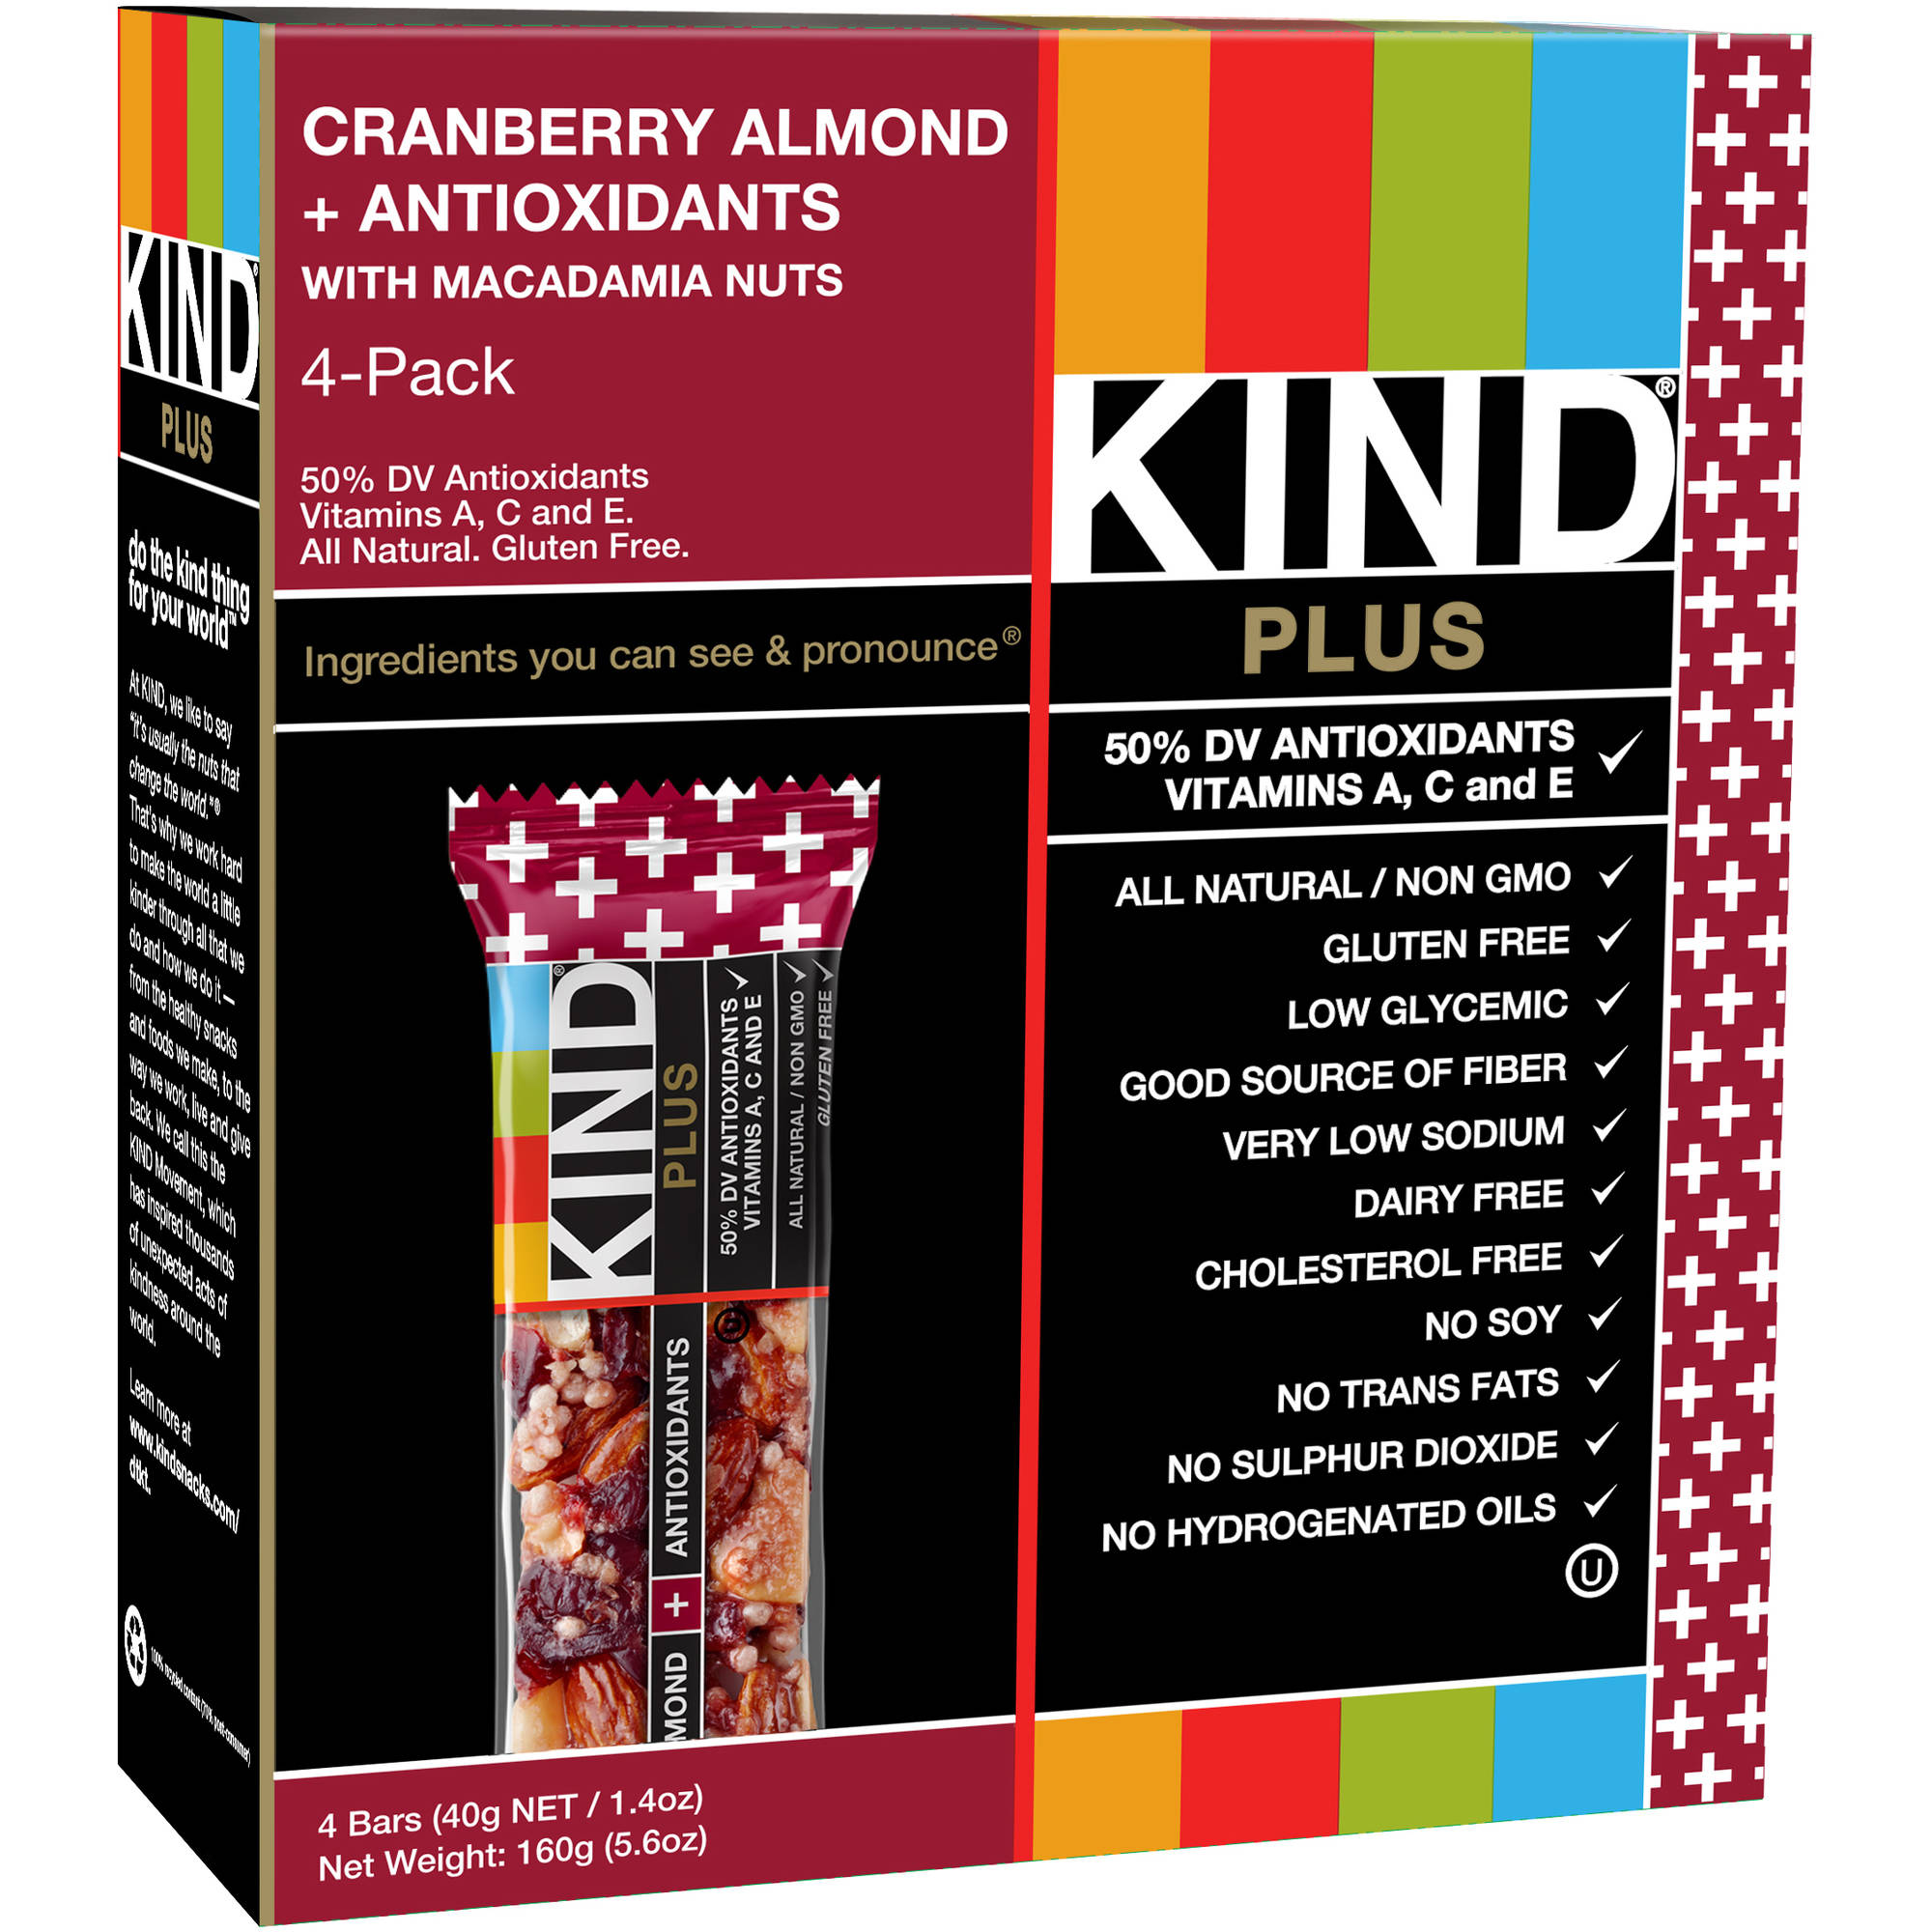 KIND PLUS Bars, Cranberry Almond  Antioxidants with Macadamia Nuts, 1.4 Ounces, 4 Count